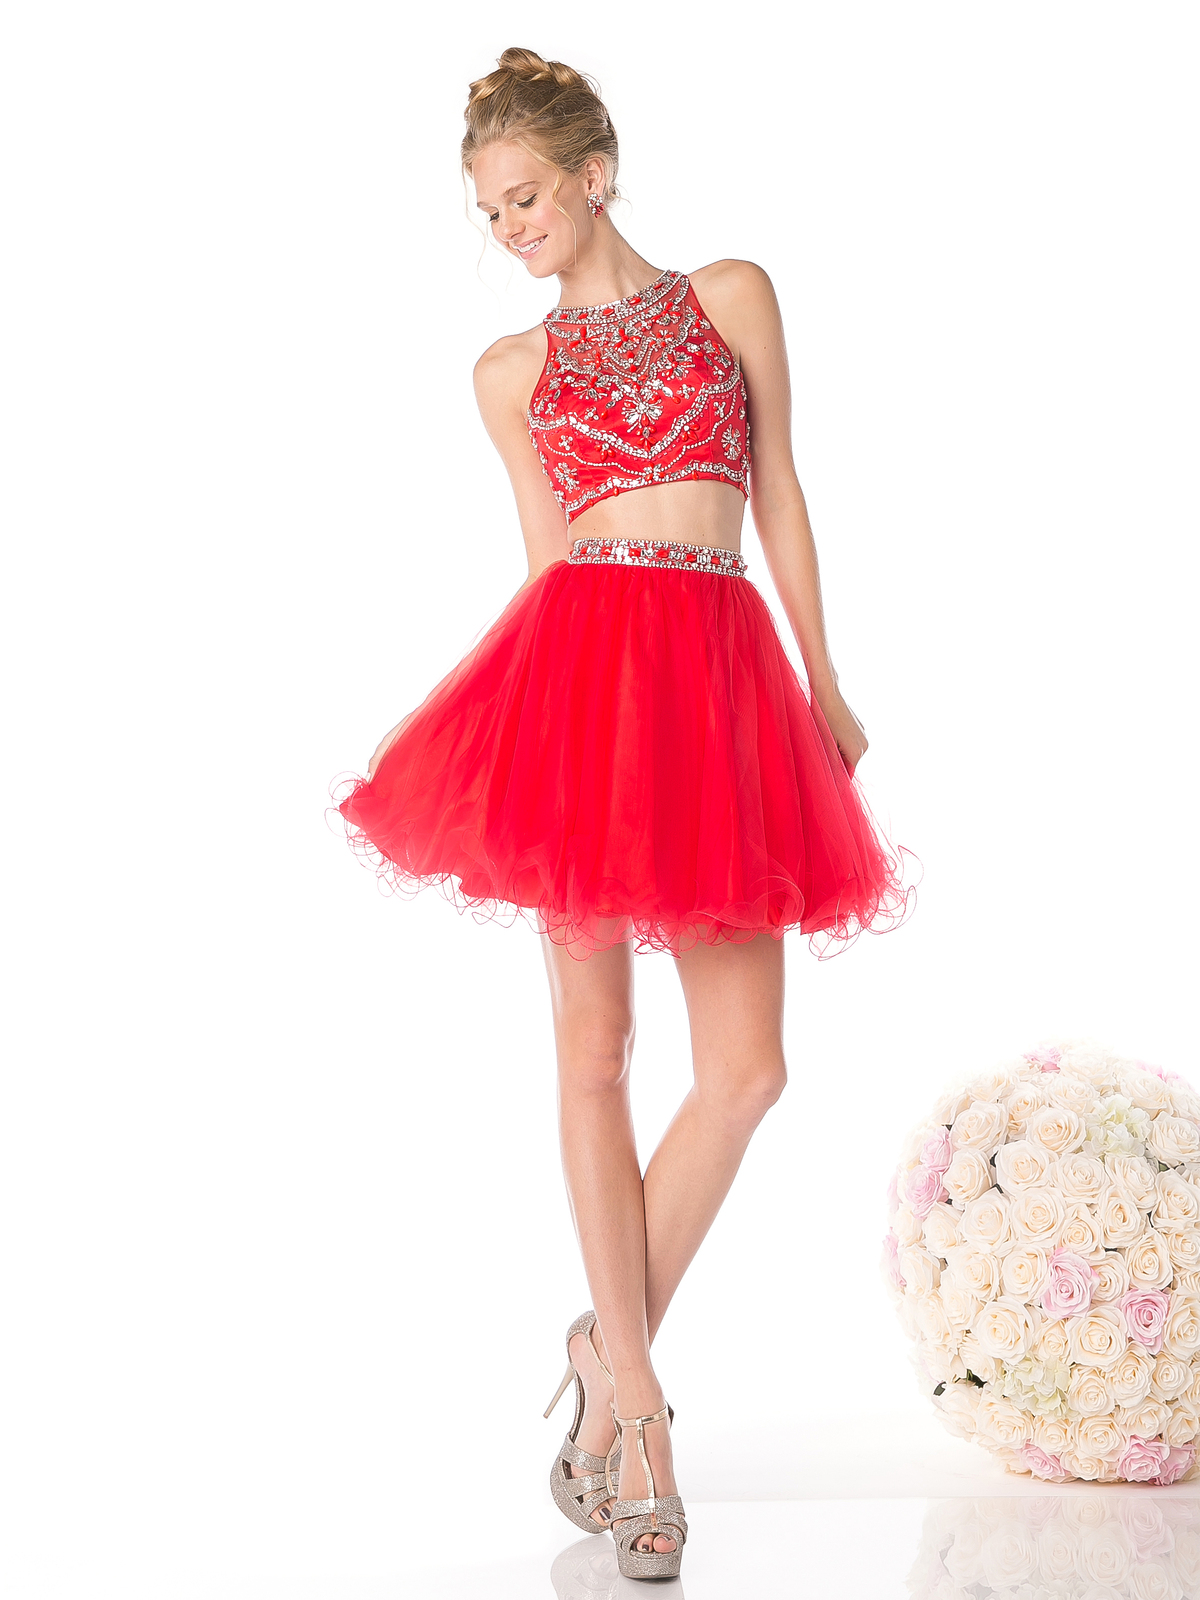 Red Prom Homecoming Dresses_Prom Dresses_dressesss